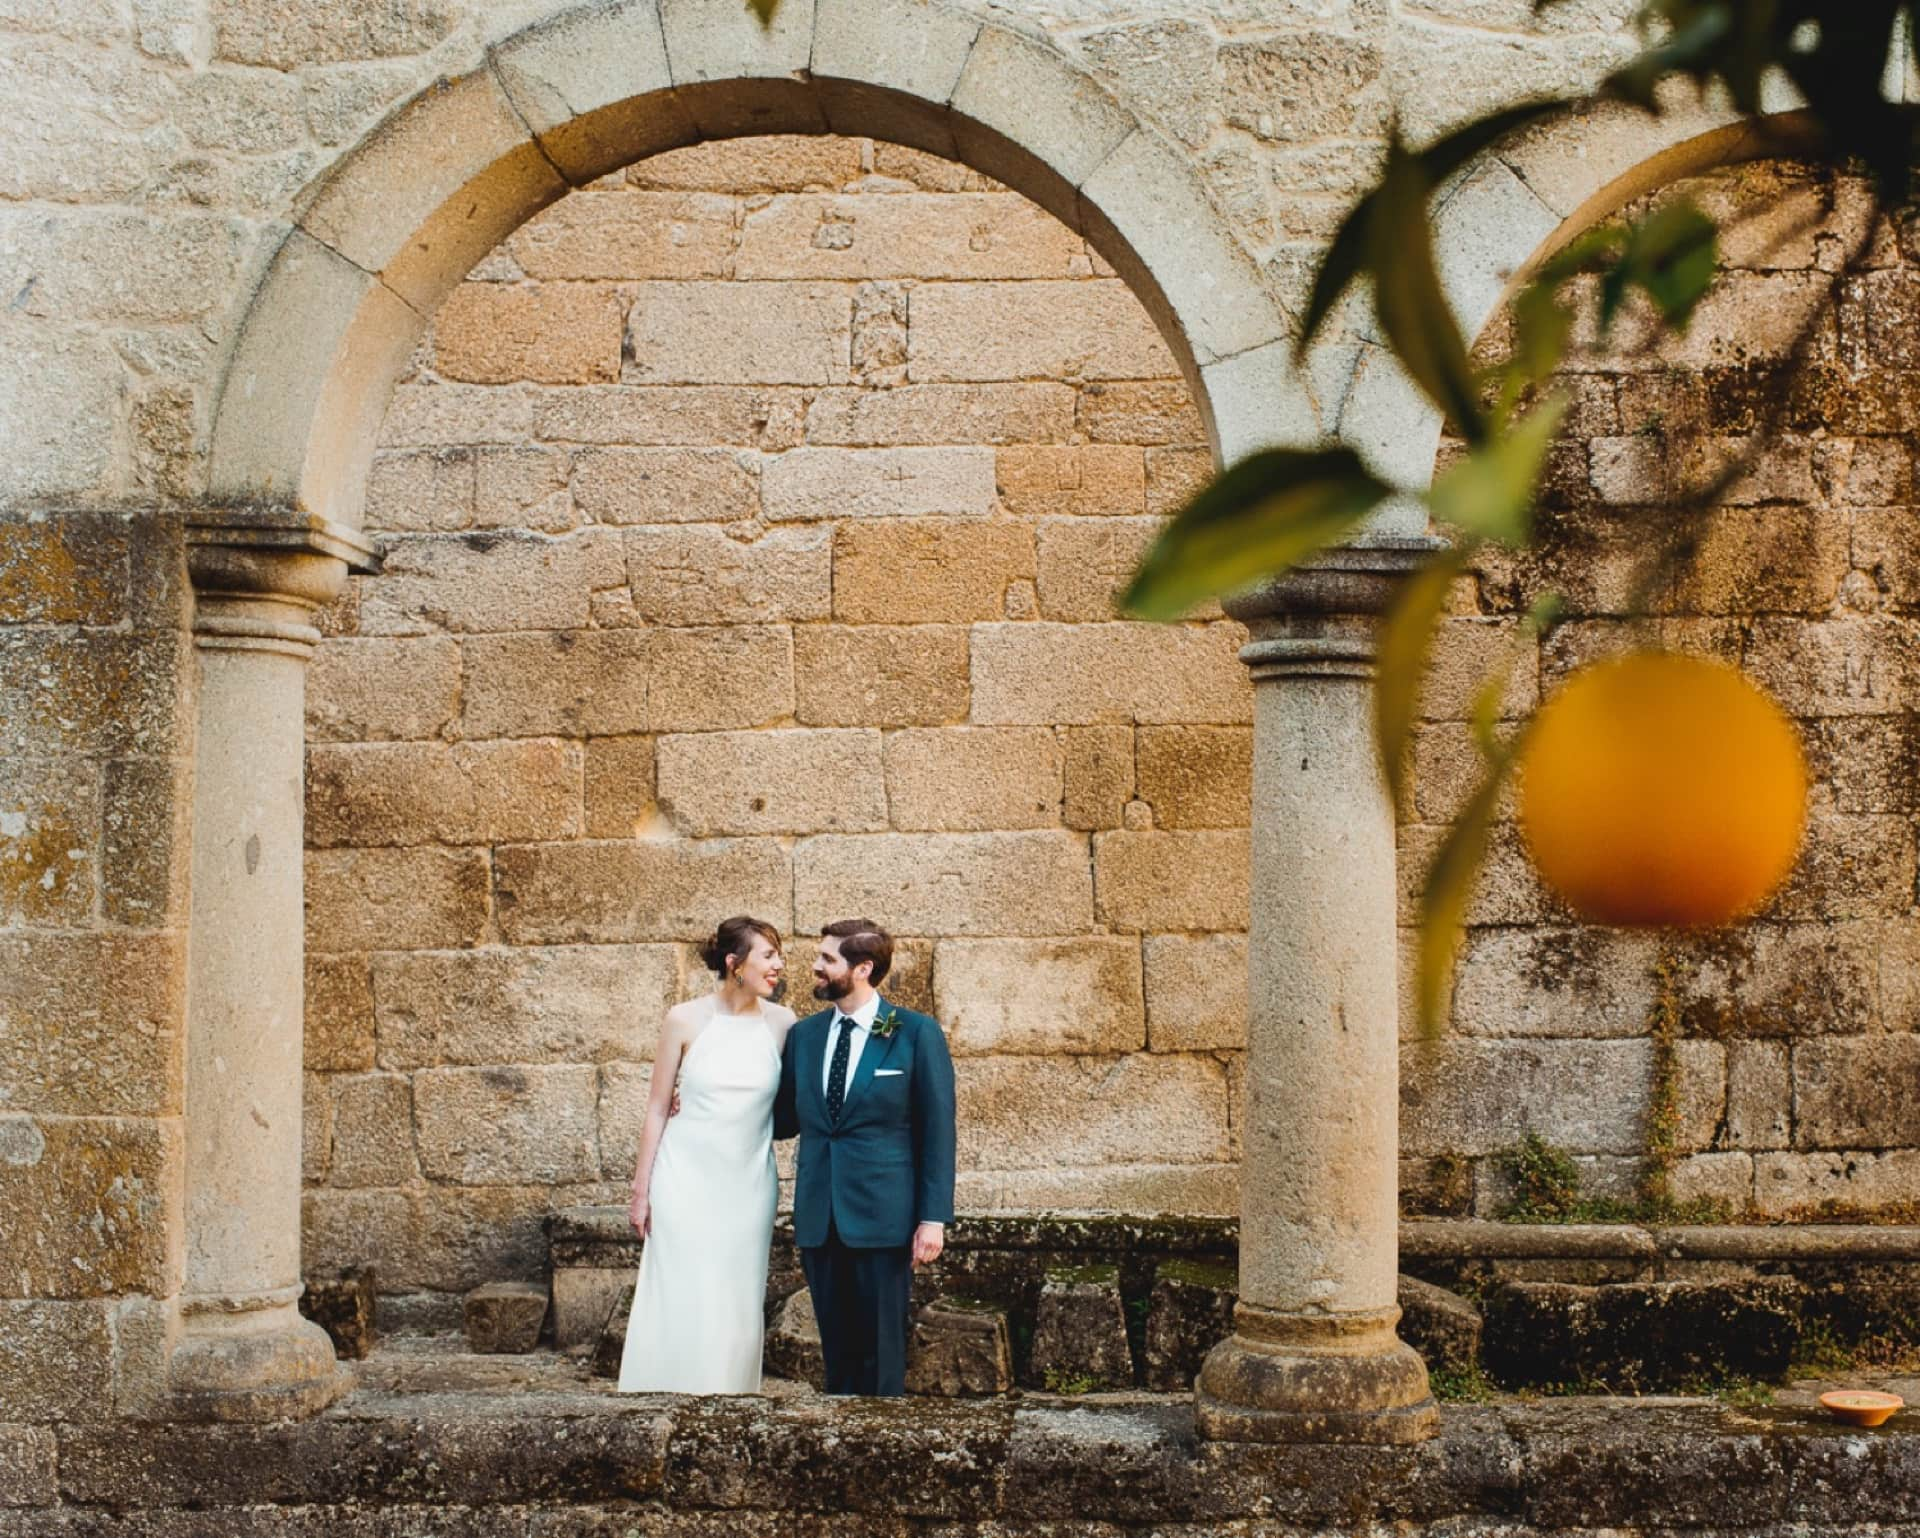 A wedding in Portugal under the orange trees